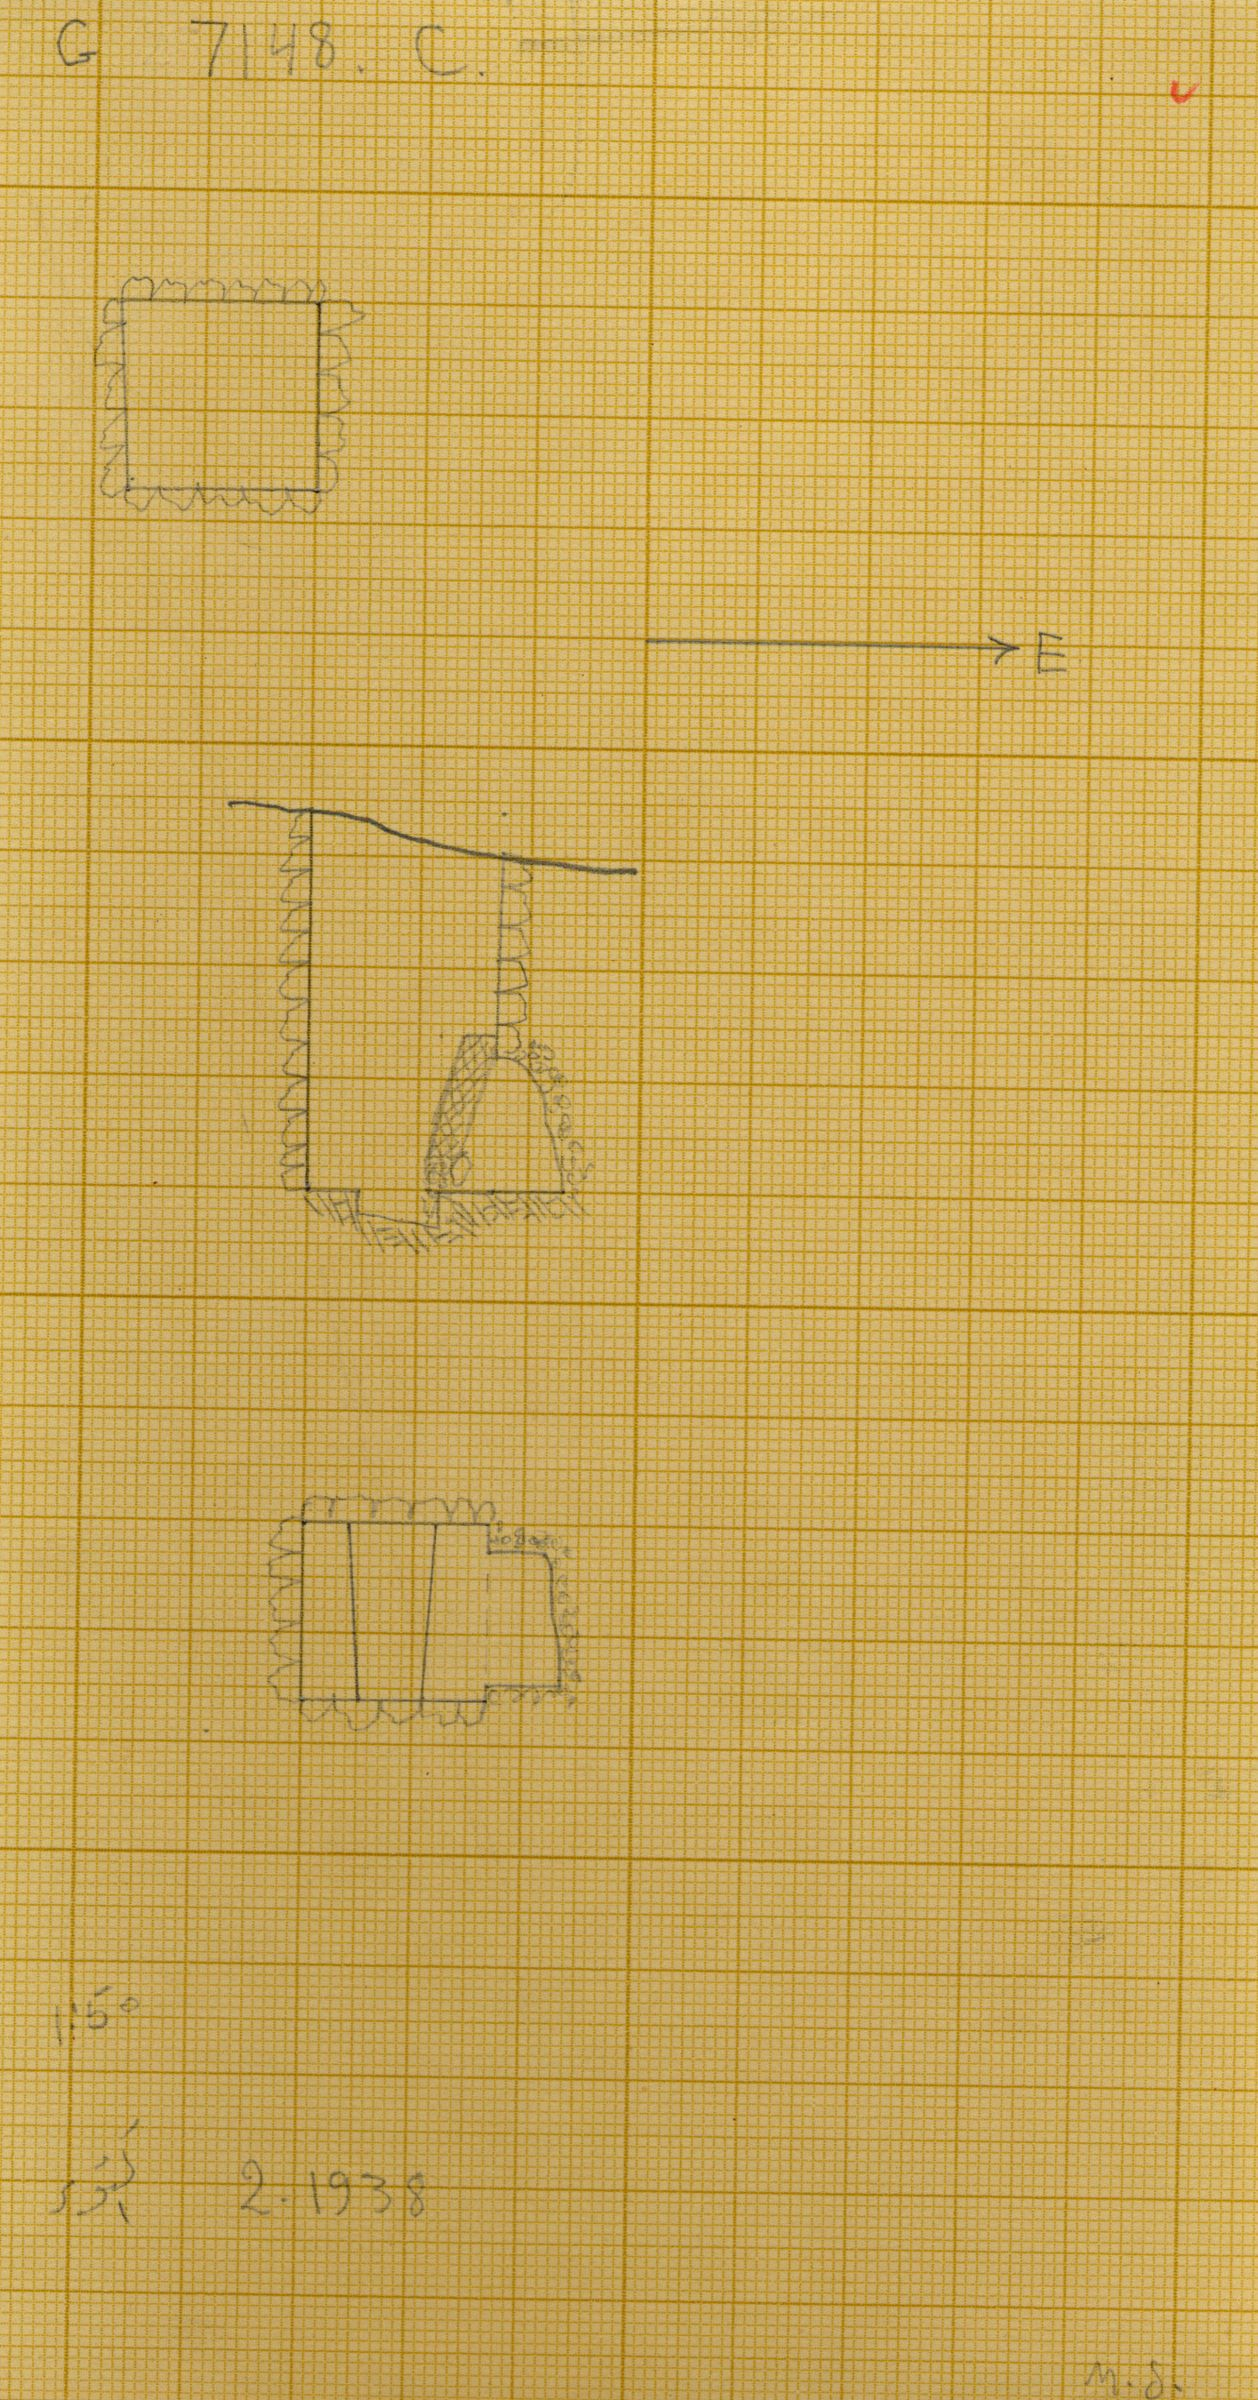 Maps and plans: G 7148+7149: G 7148, Shaft C